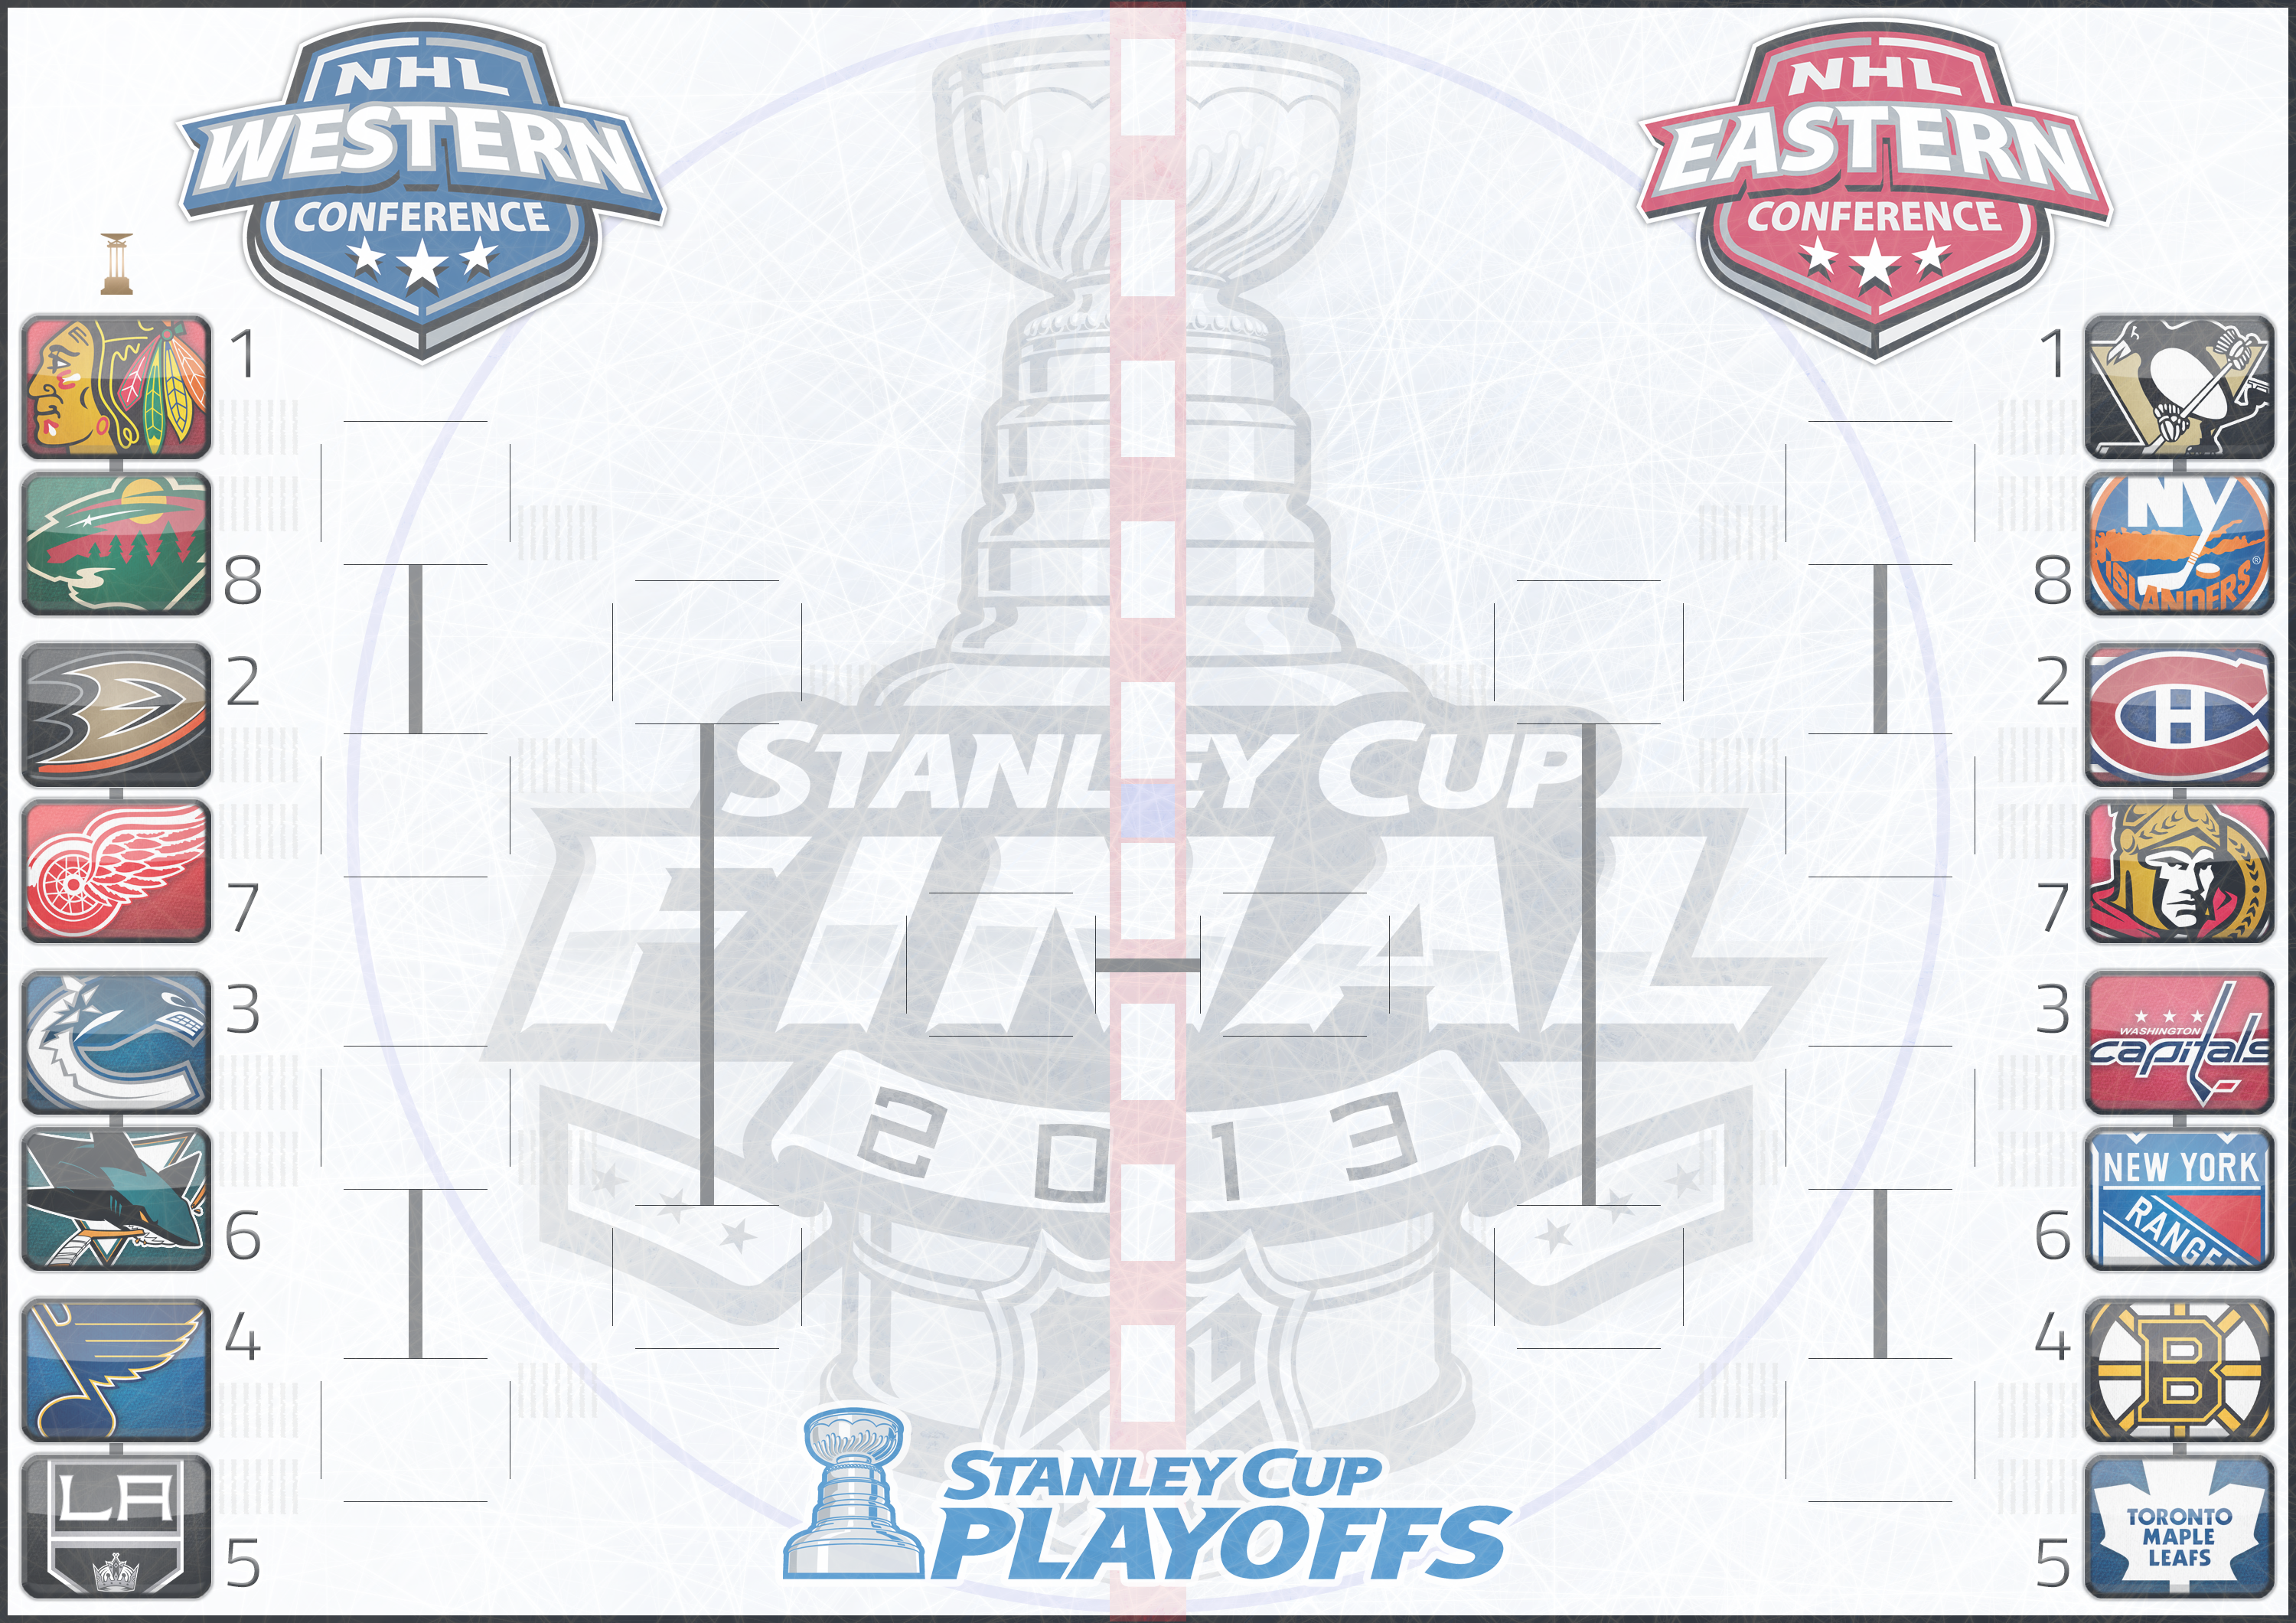 photograph about Printable Nhl Playoff Bracket referred to as The Evolution of a Playoff Bracket And consequently he spoke